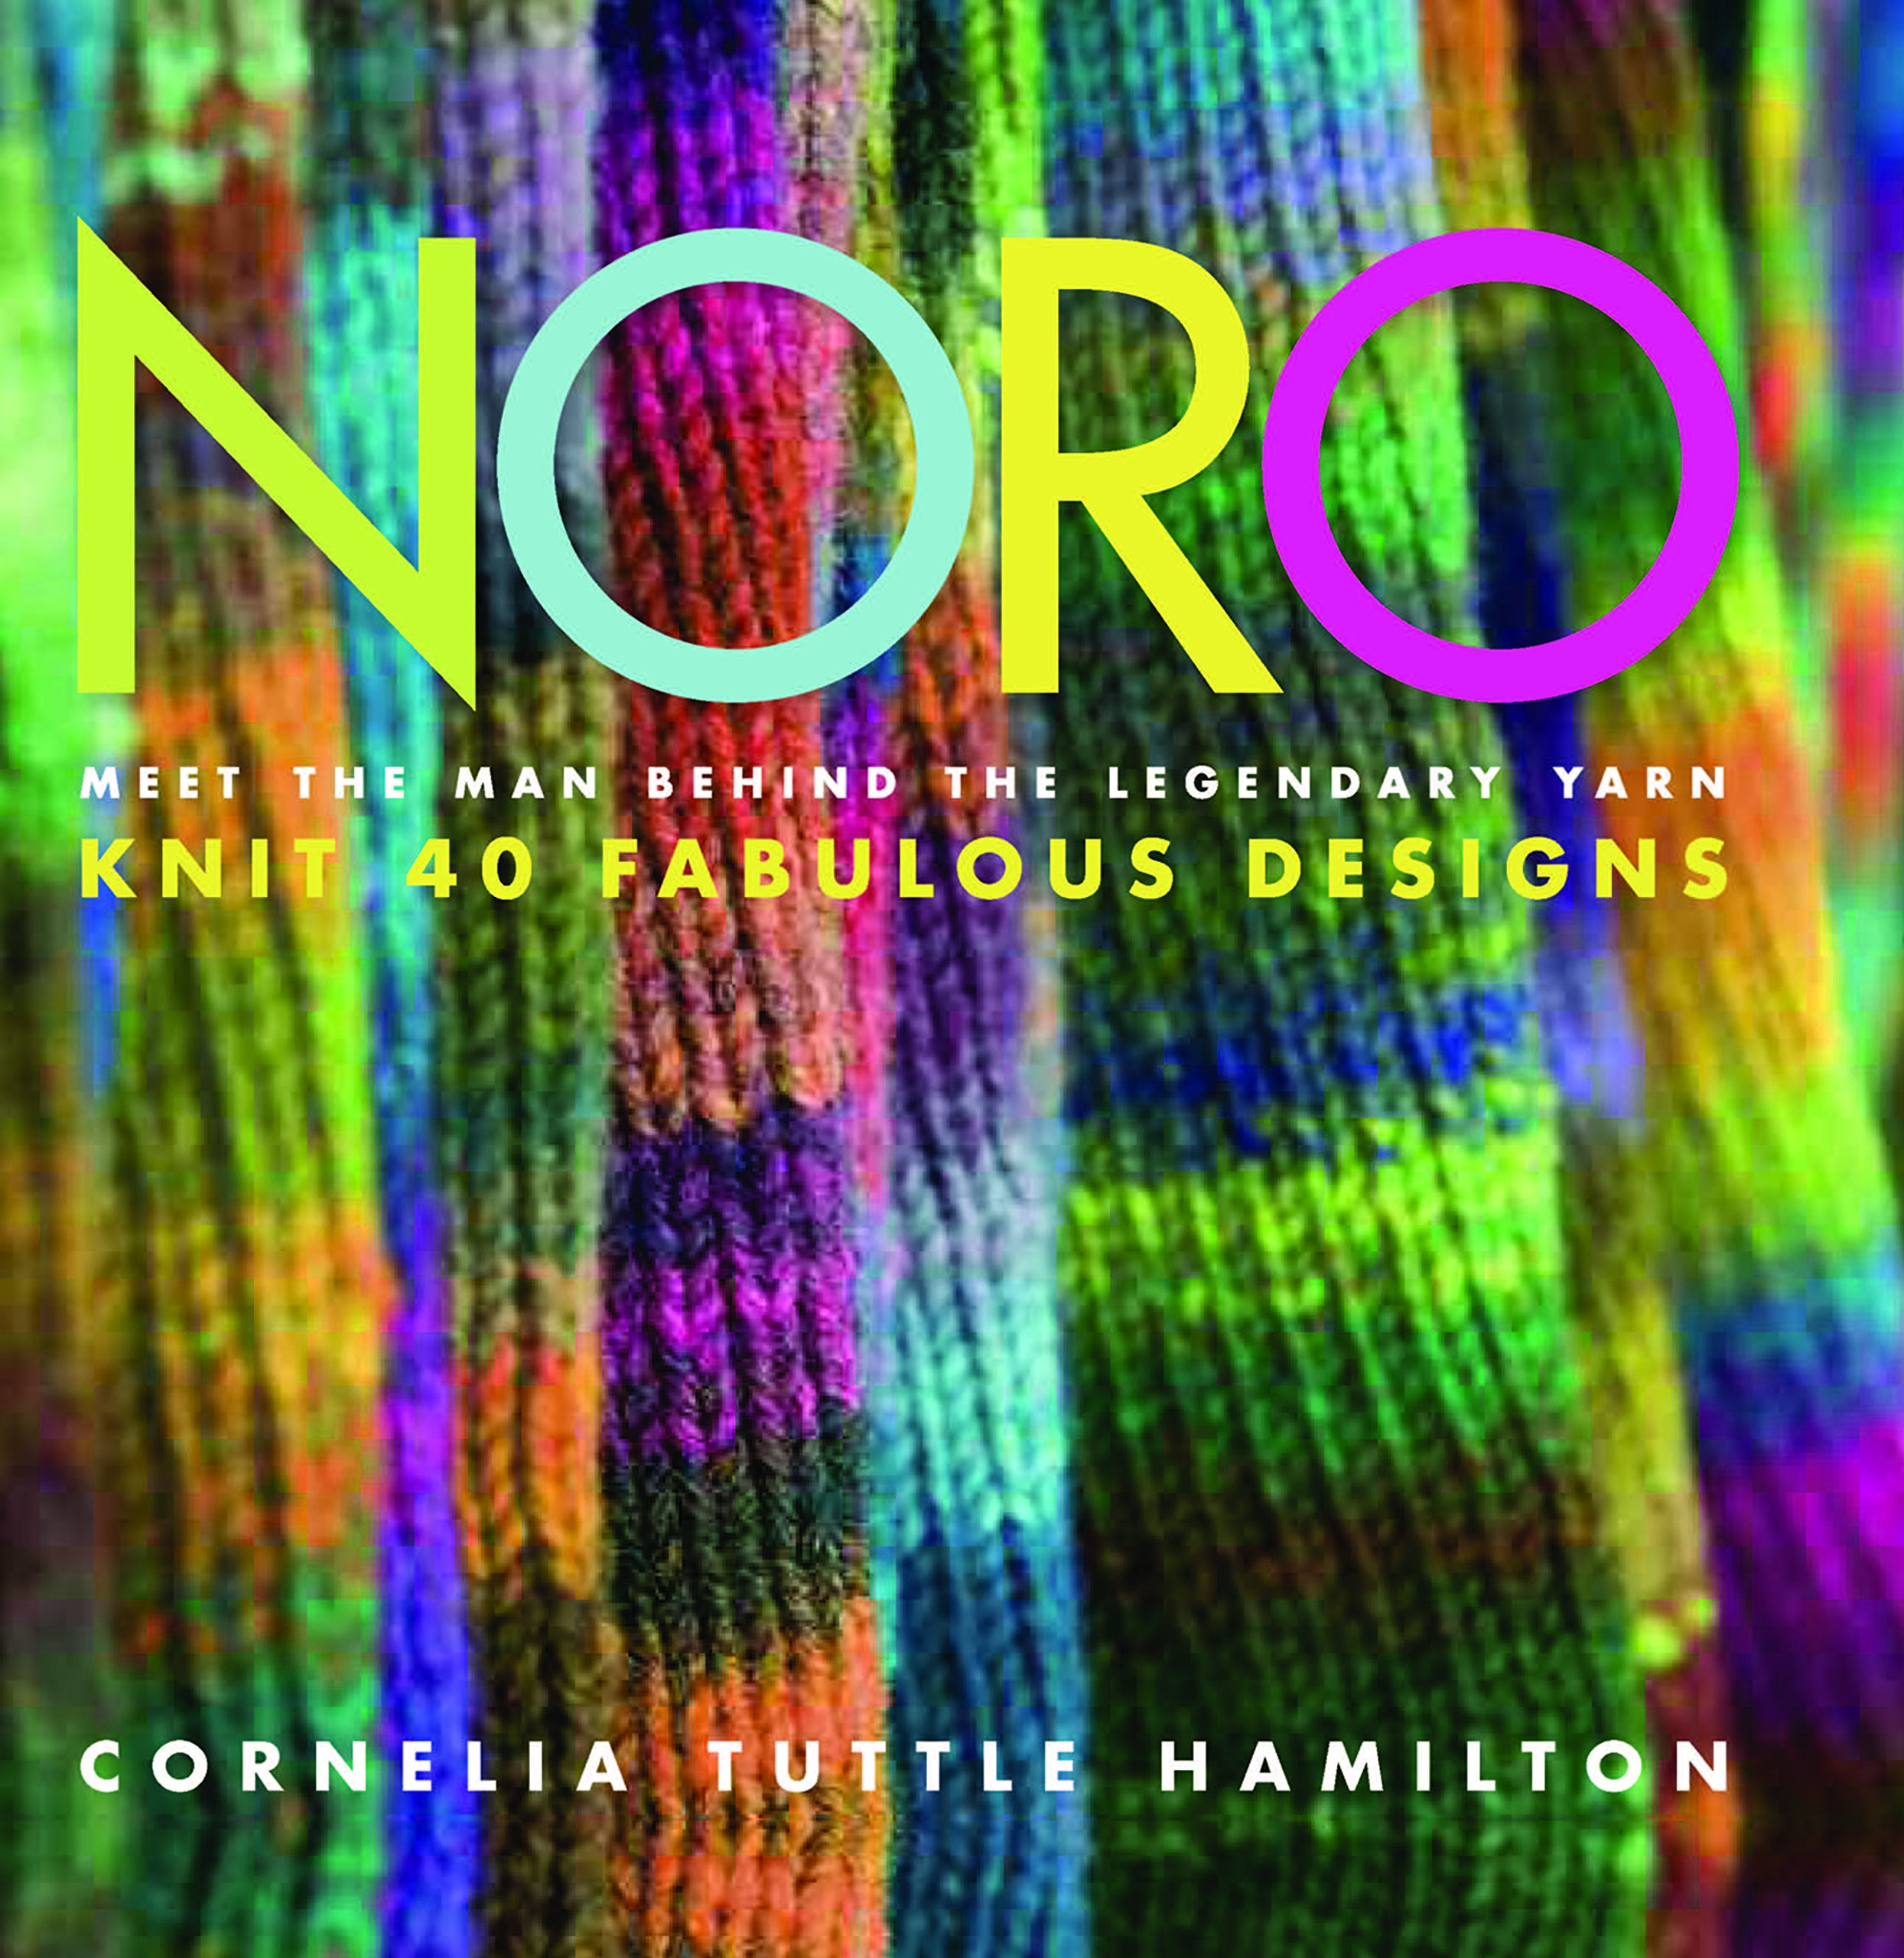 Noro: Meet the Man Behind the Legendary Yarn*Knit 40 Fabulous Designs (Knit Noro Collection)